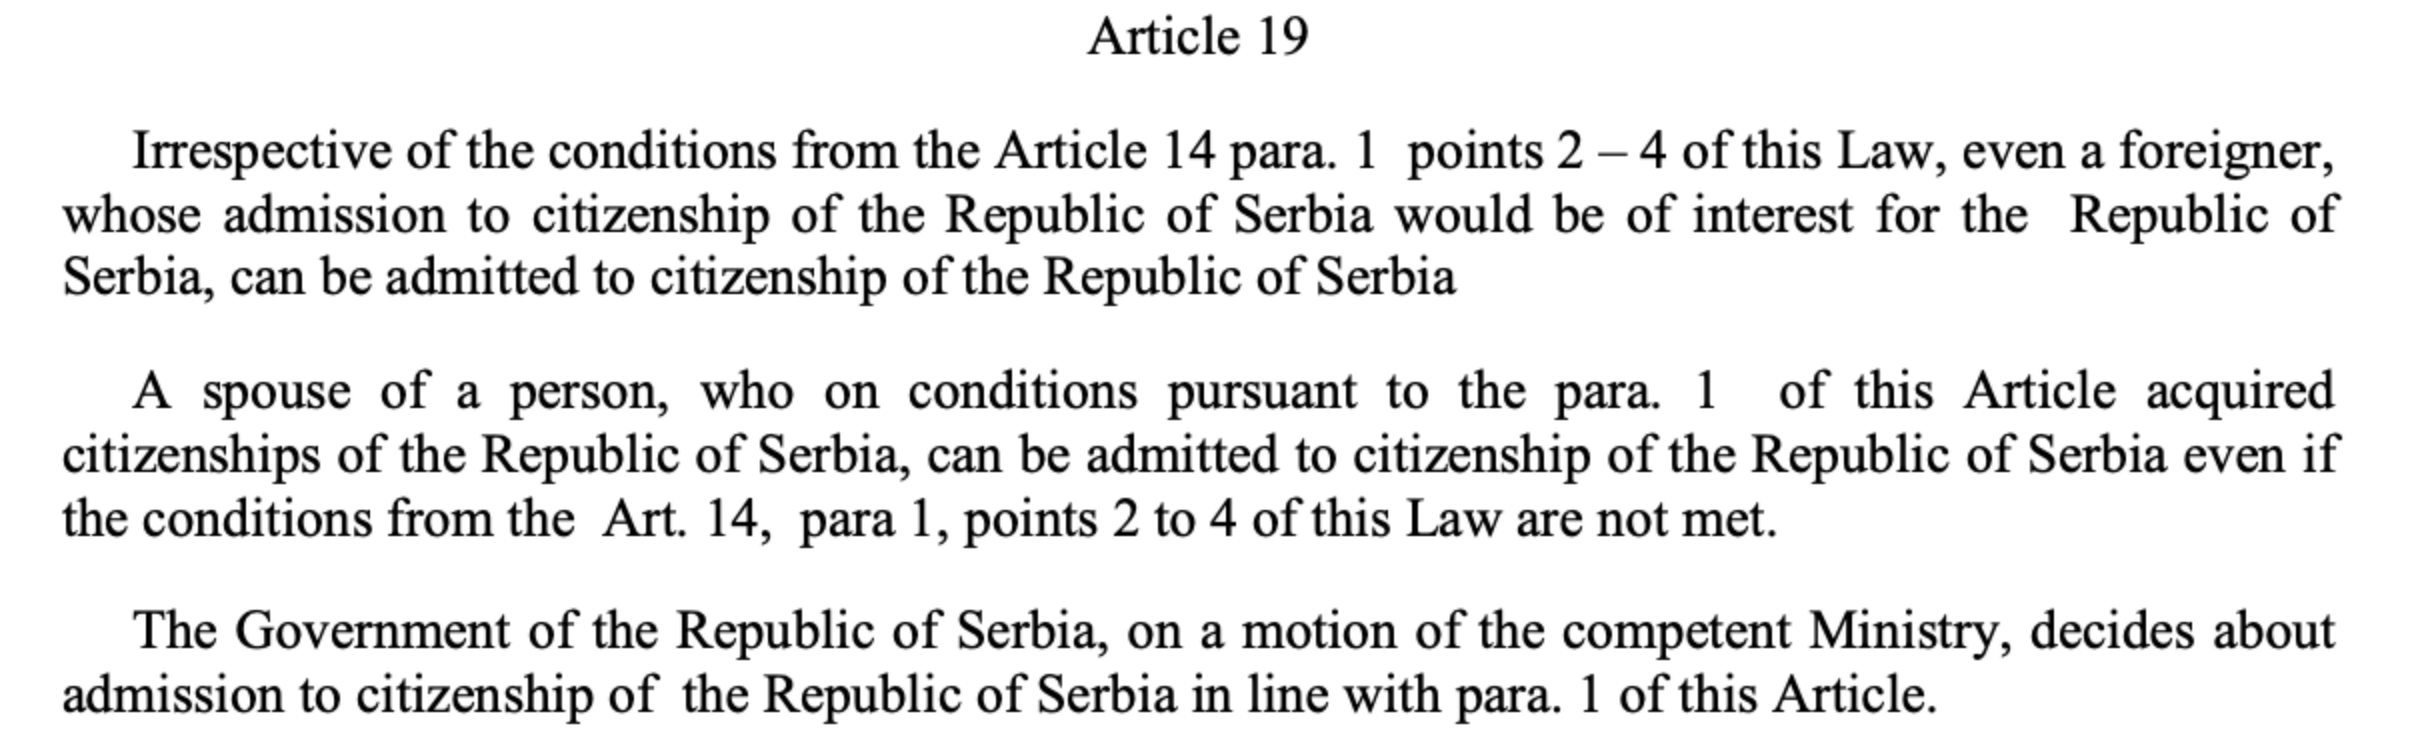 Article 19 of the Serbian constitution